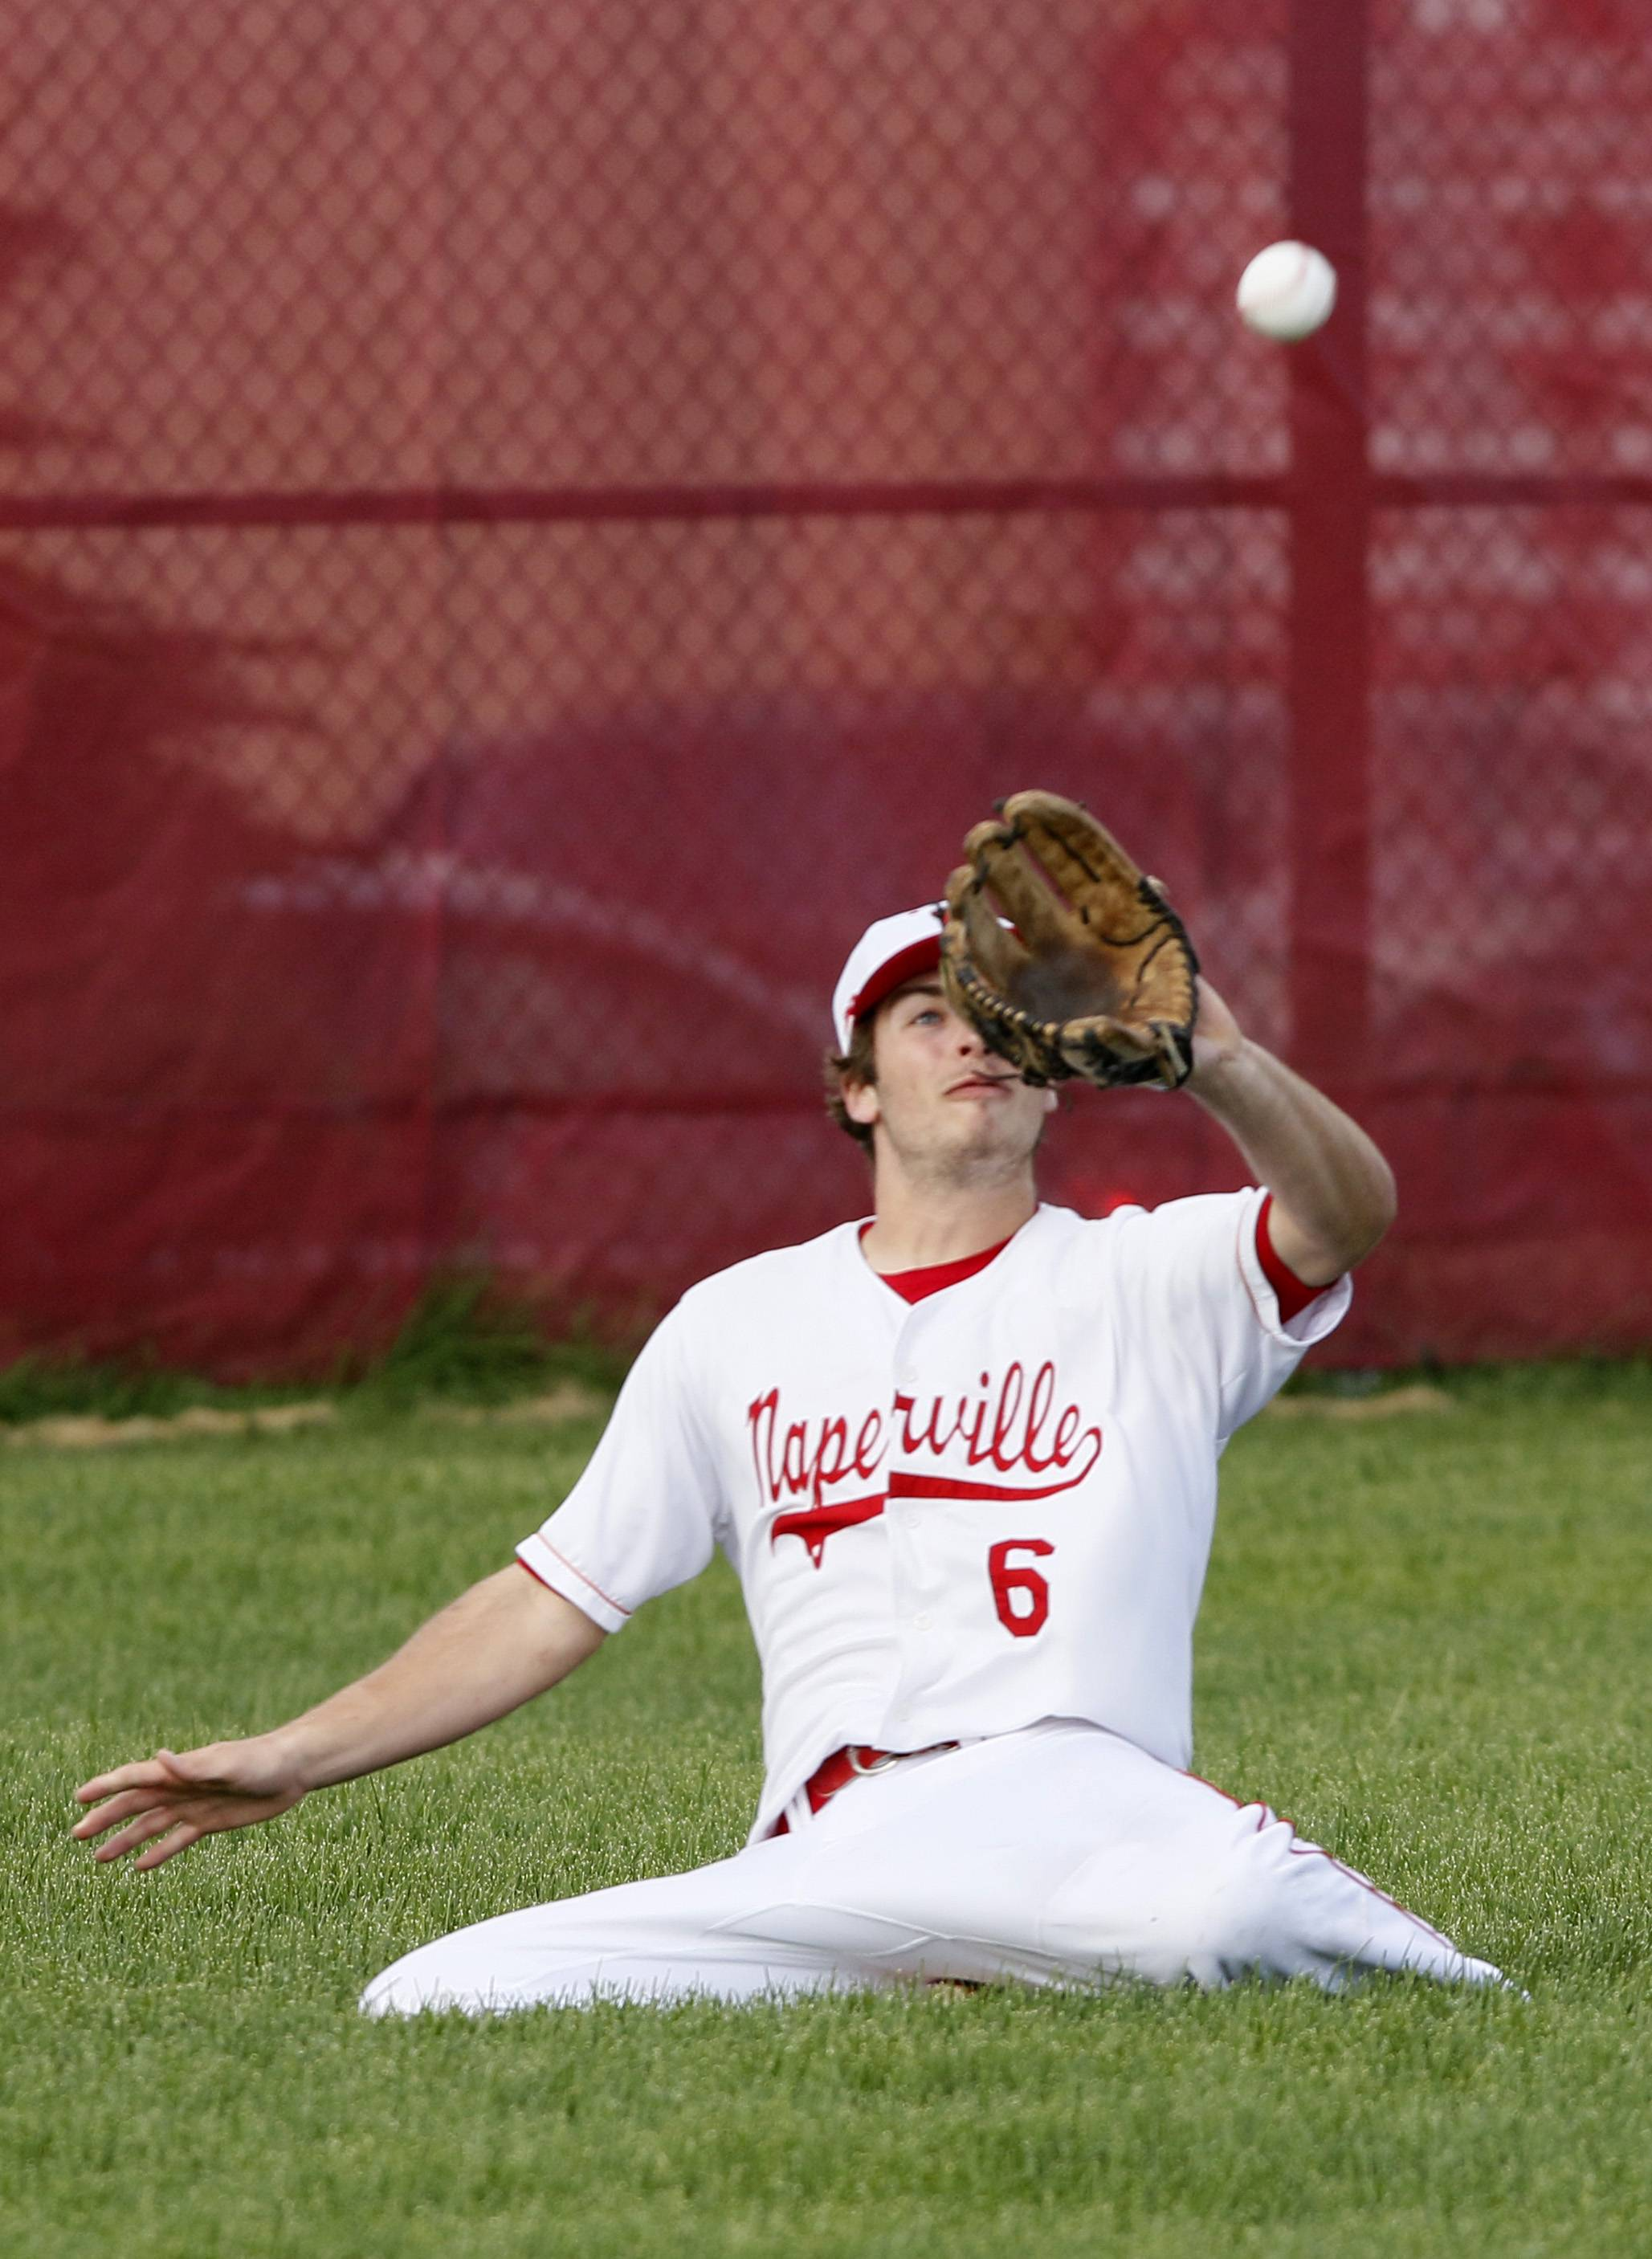 Naperville Central's Thomas Carlsen eyes the ball against Waubonsie Valley during boys baseball action in Naperville.